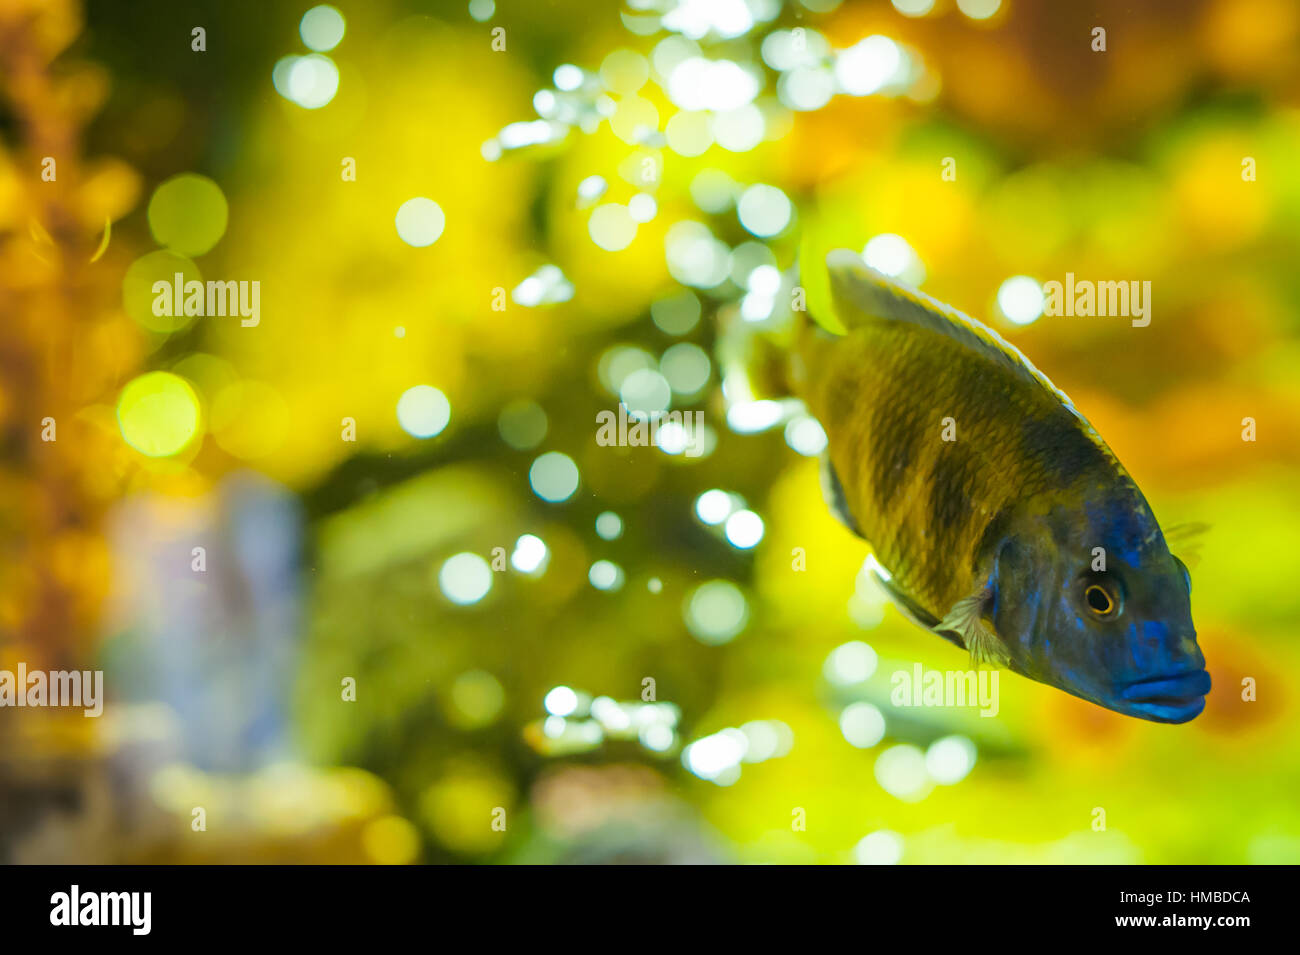 Pond fish rock stockfotos pond fish rock bilder alamy for Aquarium fische im gartenteich